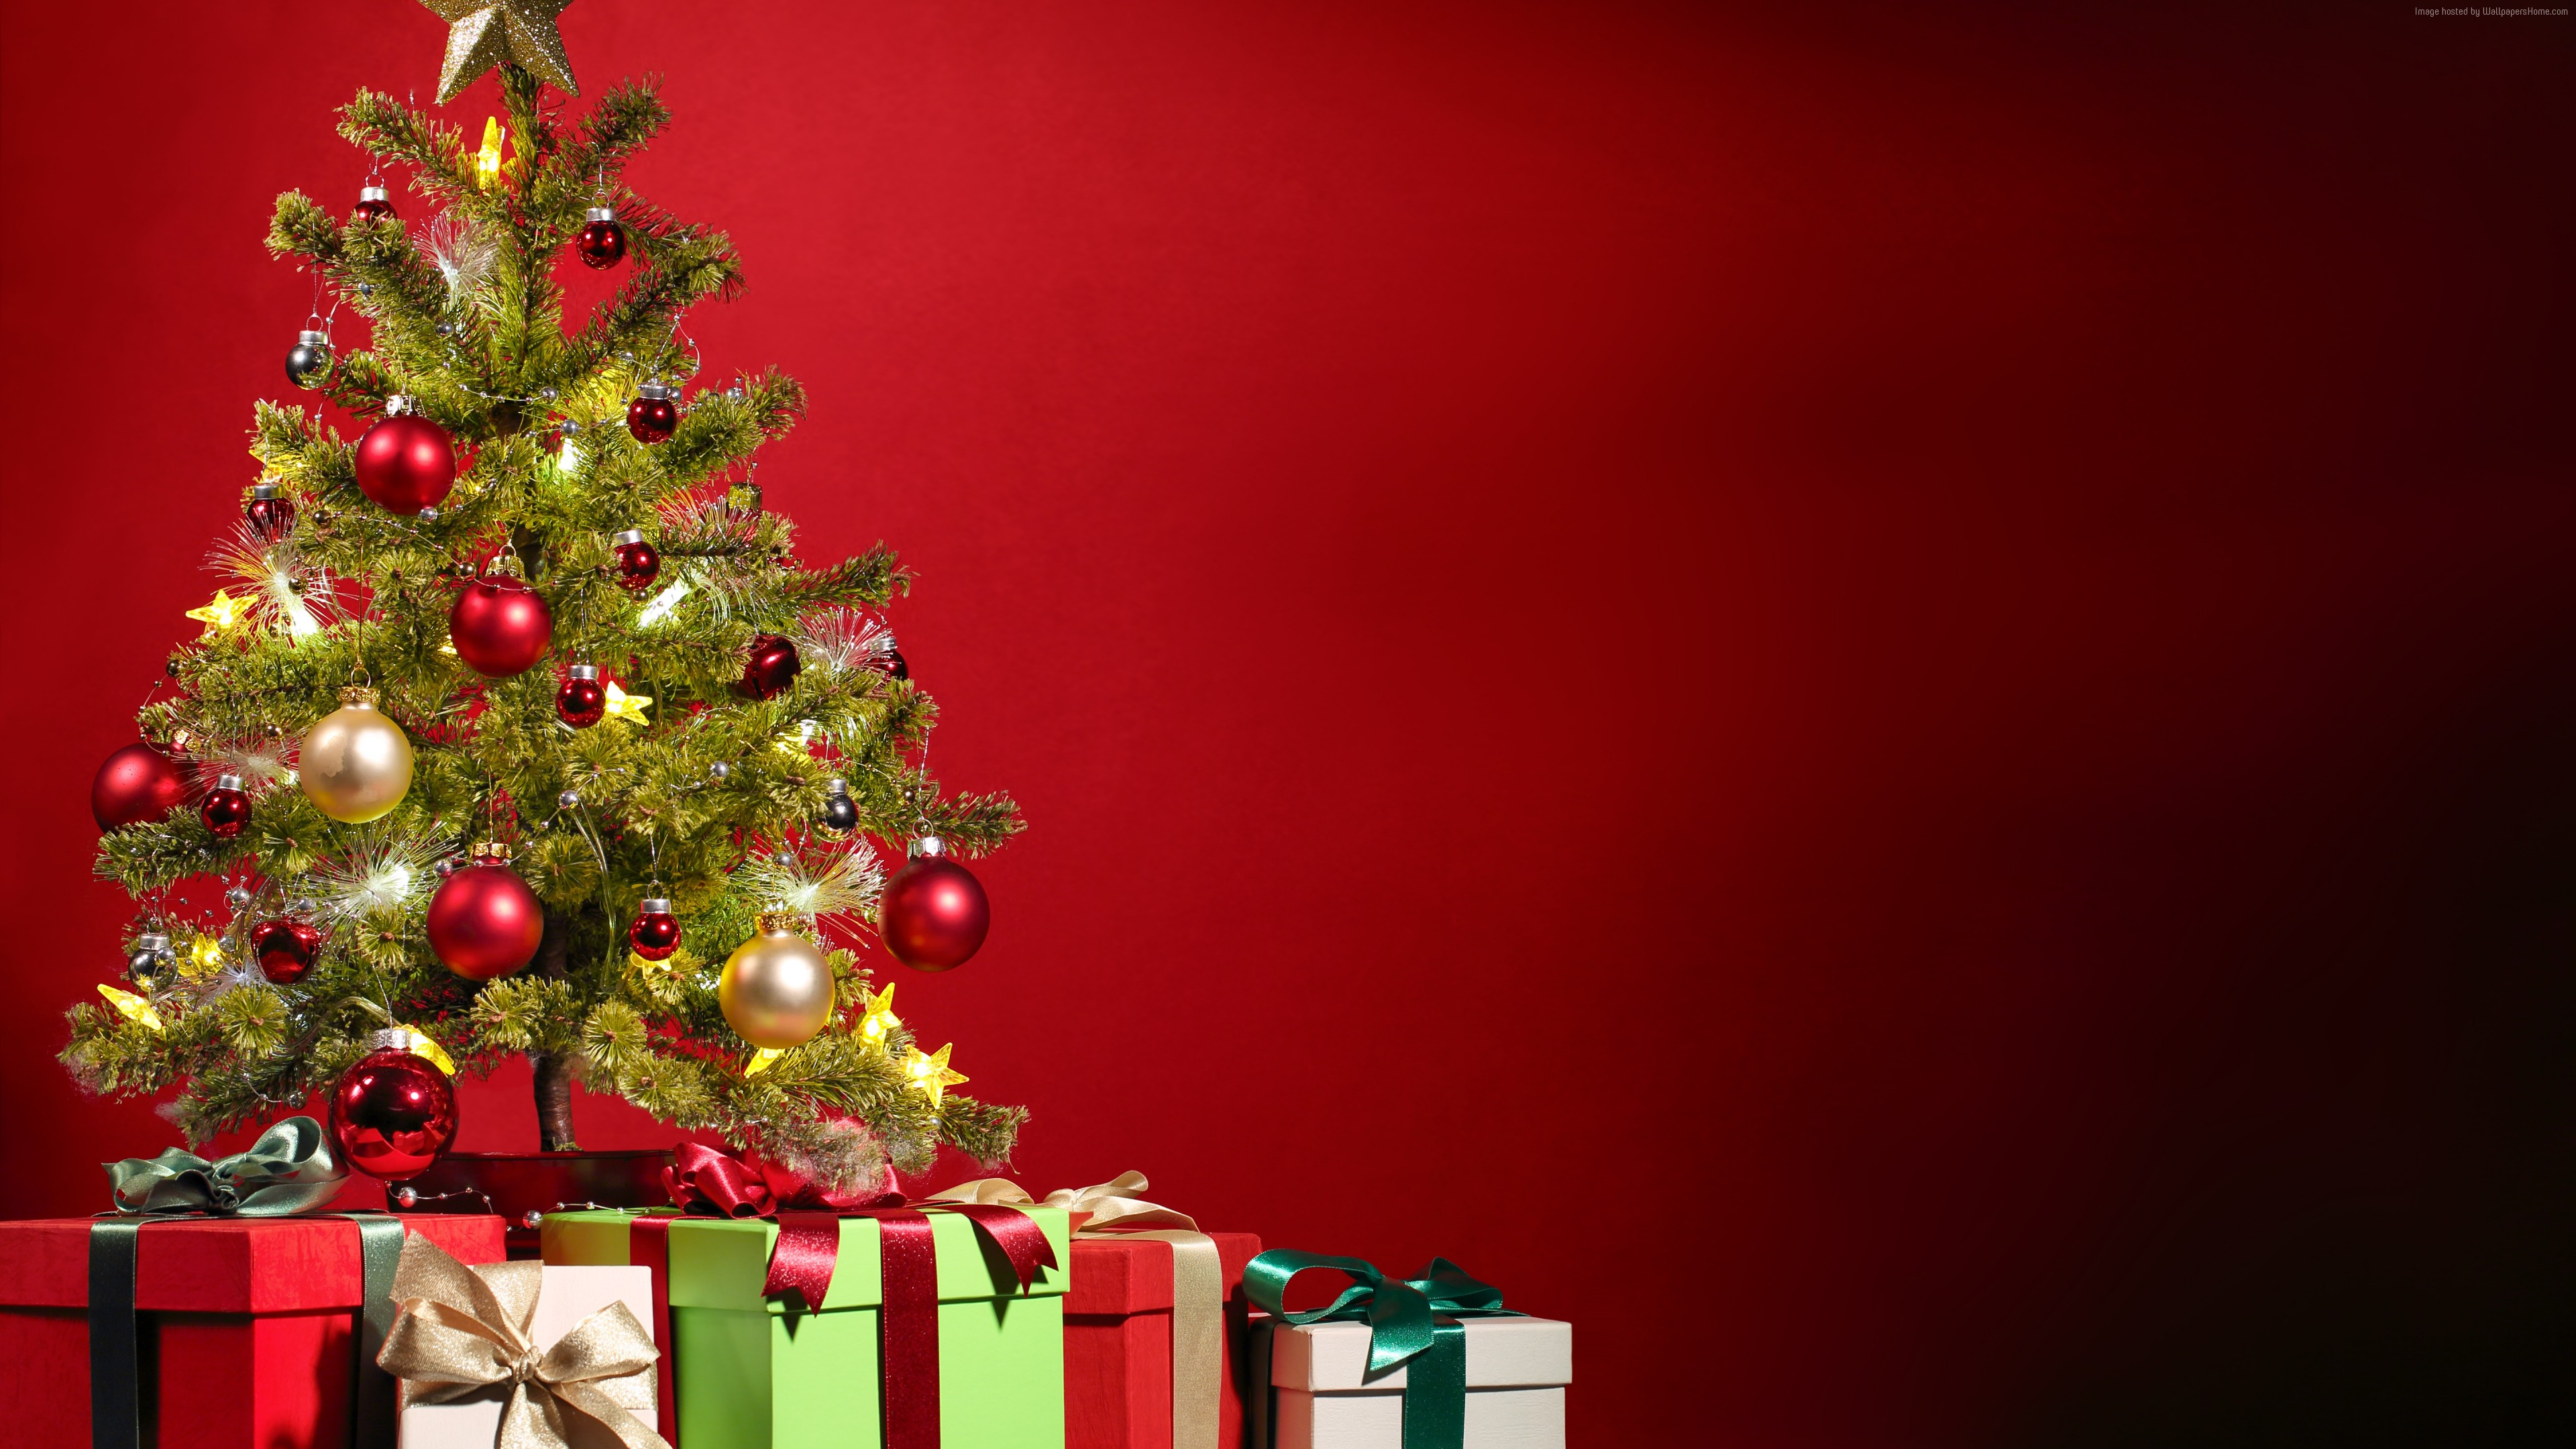 Wallpaper Christmas, New Year, gifts, fir-tree, red, 5k, Holidays